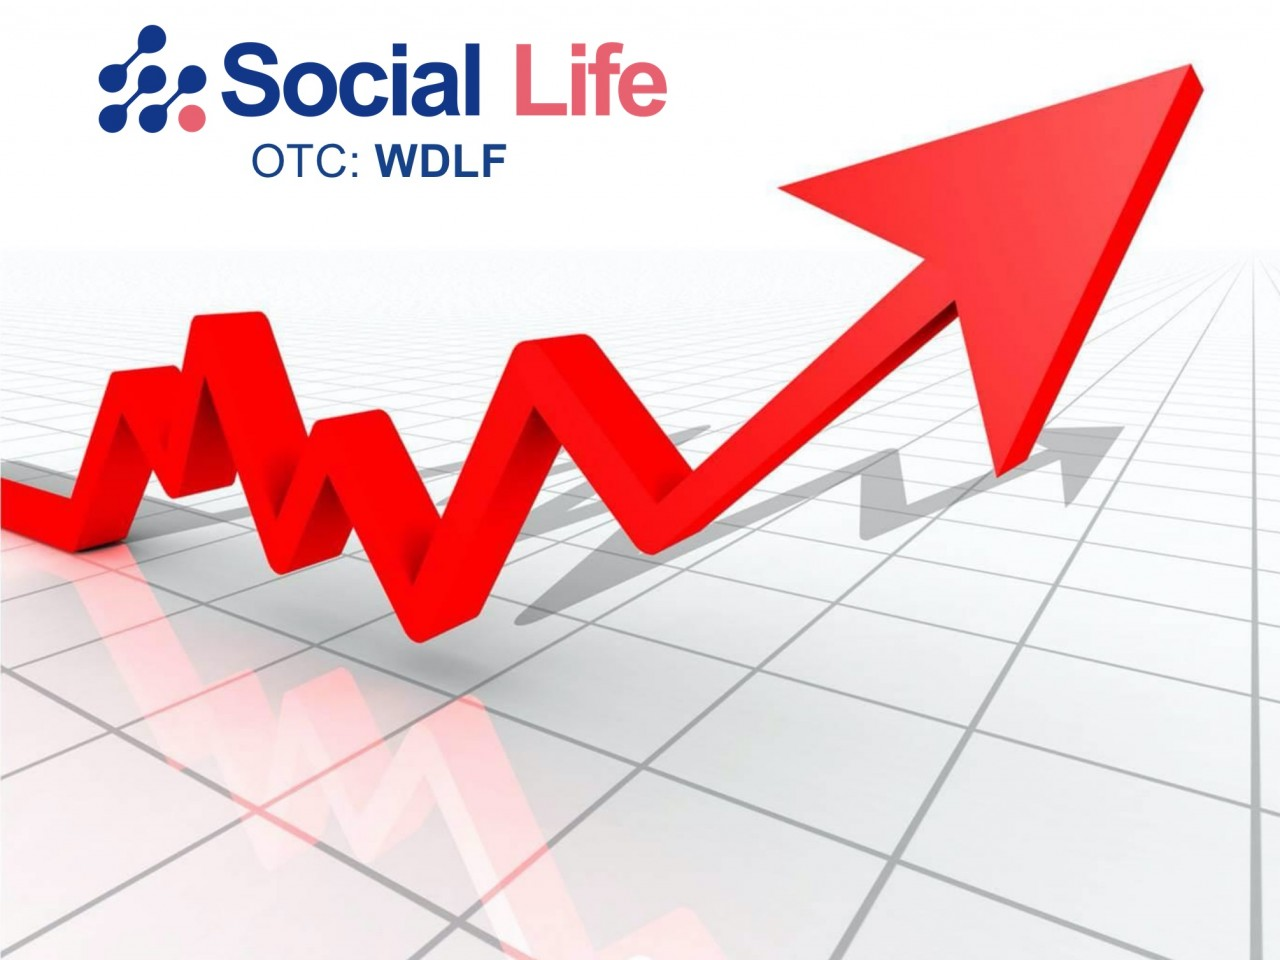 Social Life Network (OTC: WDLF) Files $5,000,000 Complaint in The United States District Court for the Southern District of Florida